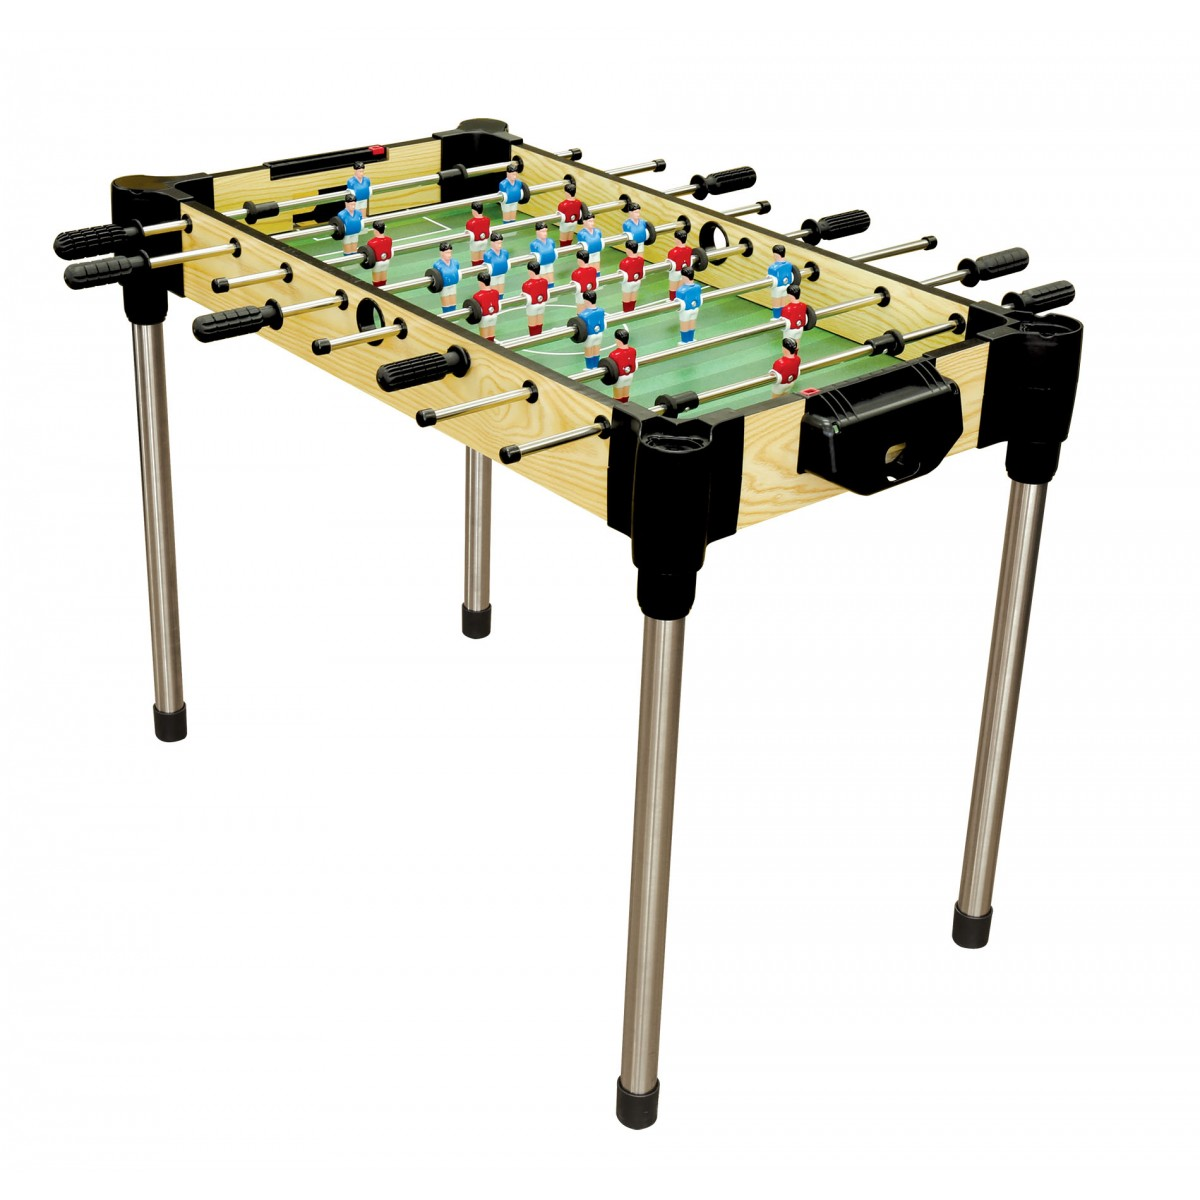 36 92cm 11 in 1 games table pool basketball table for Table 6 games